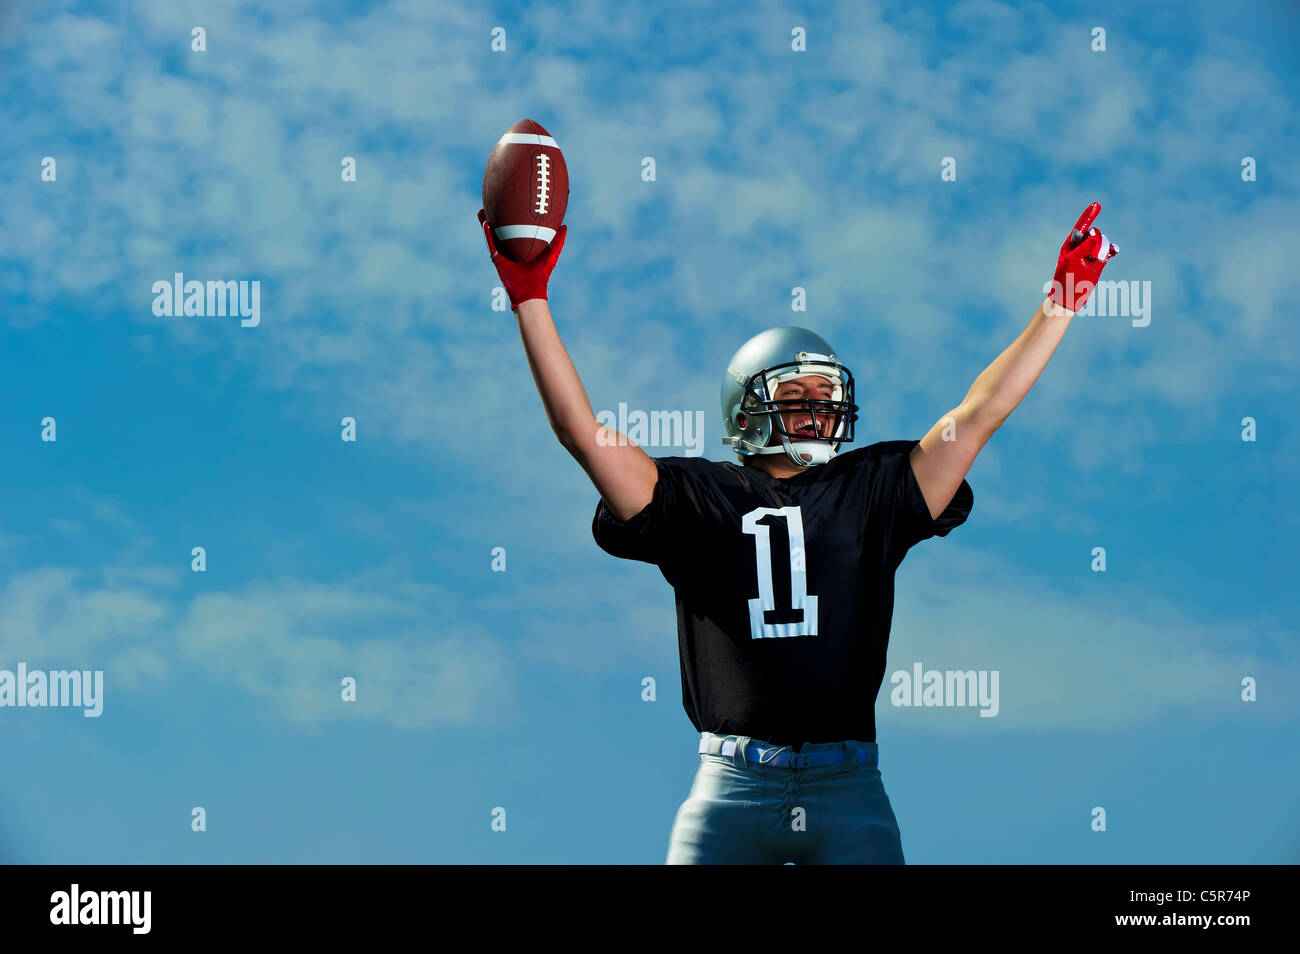 American Footballer celebrates being No'1. - Stock Image